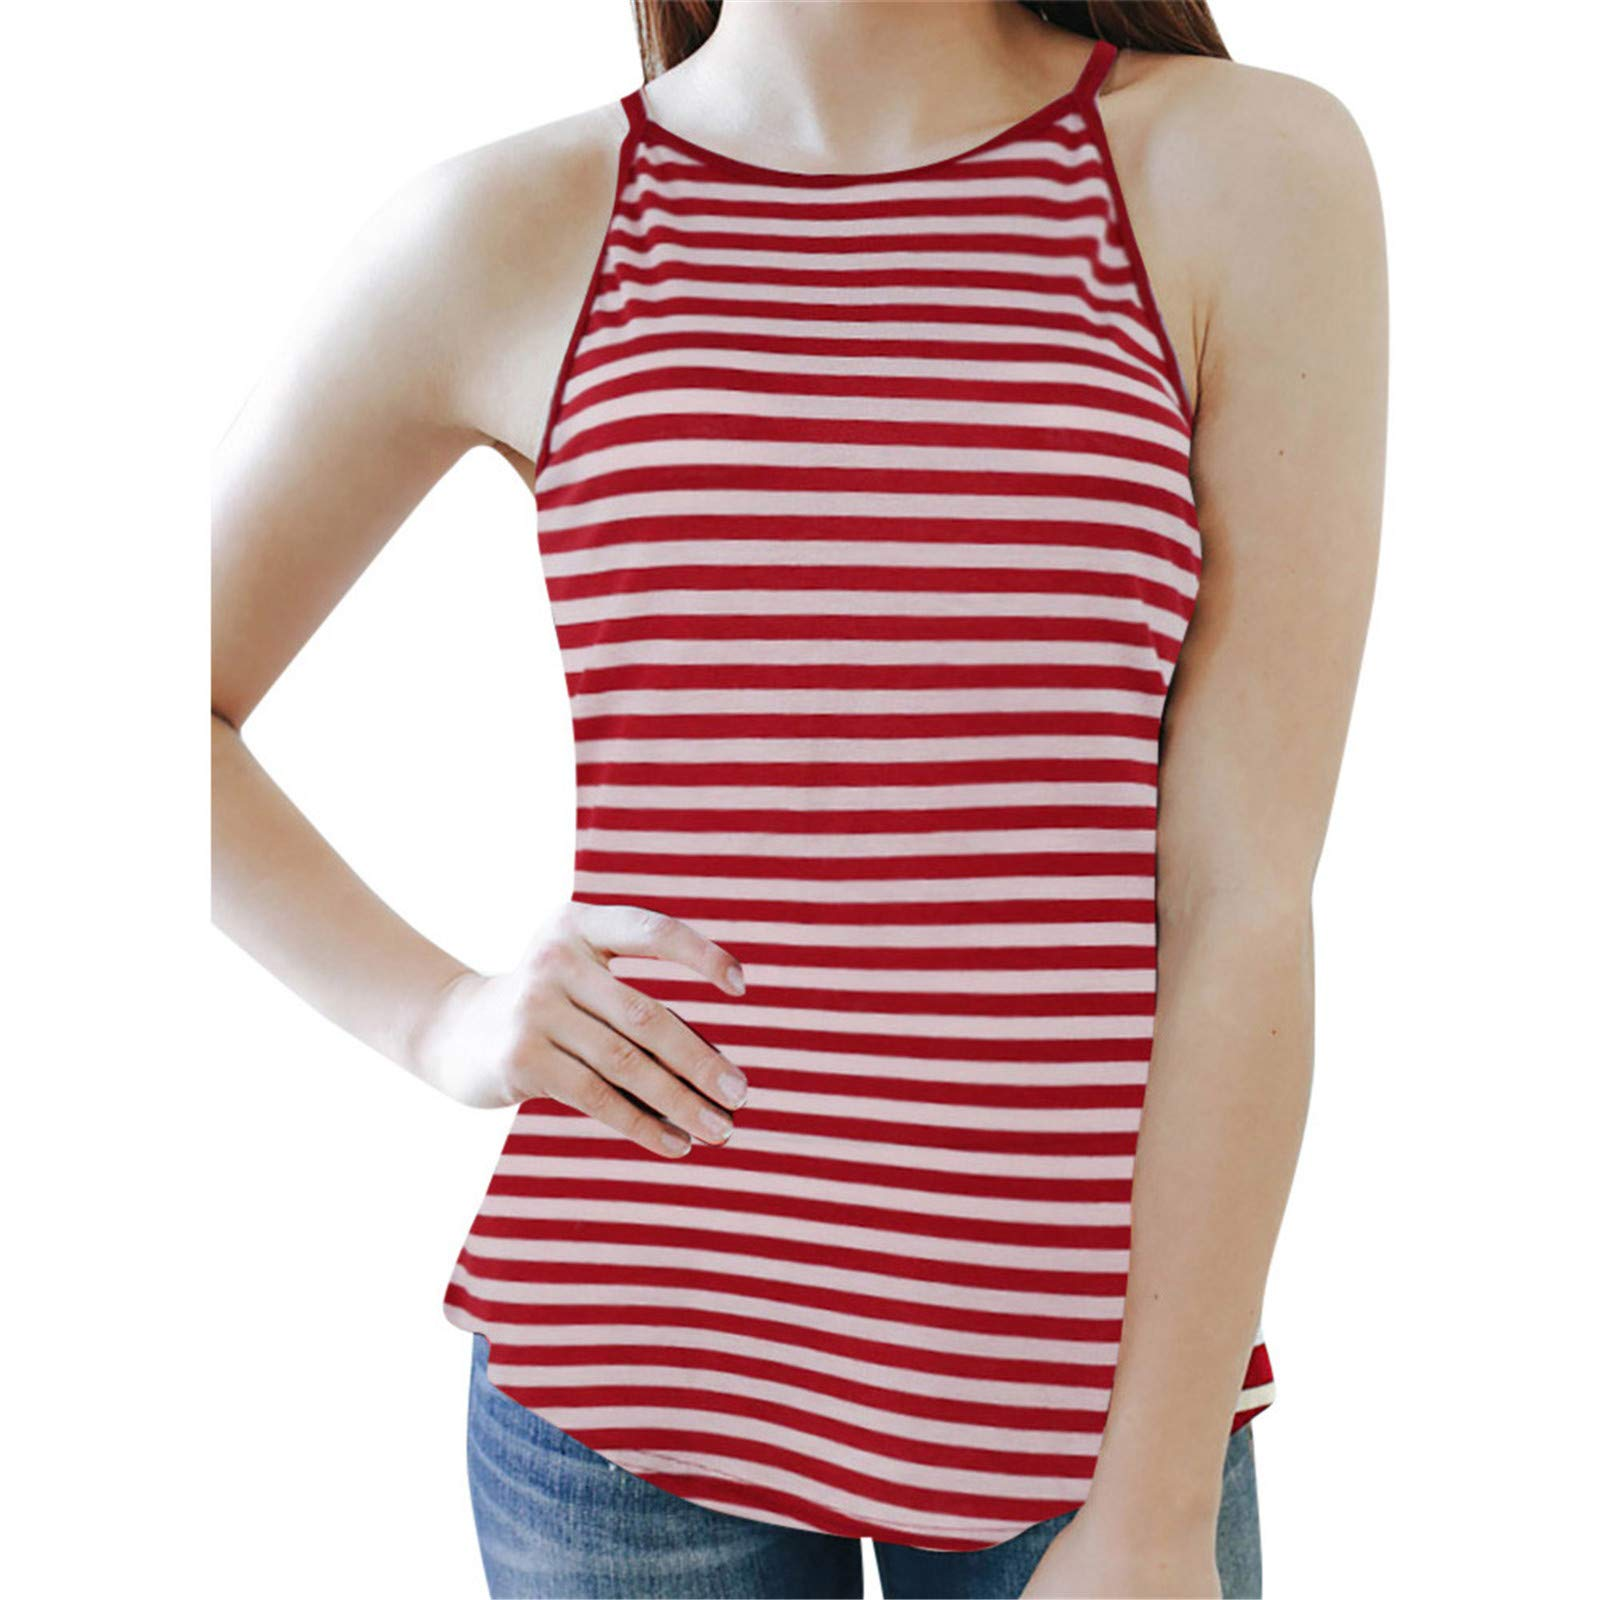 BAOHOKE Summer Sleeveless Striped Vest Blouse Tank Tops Sling T-Shirt Tank Top for Women (Red,M)